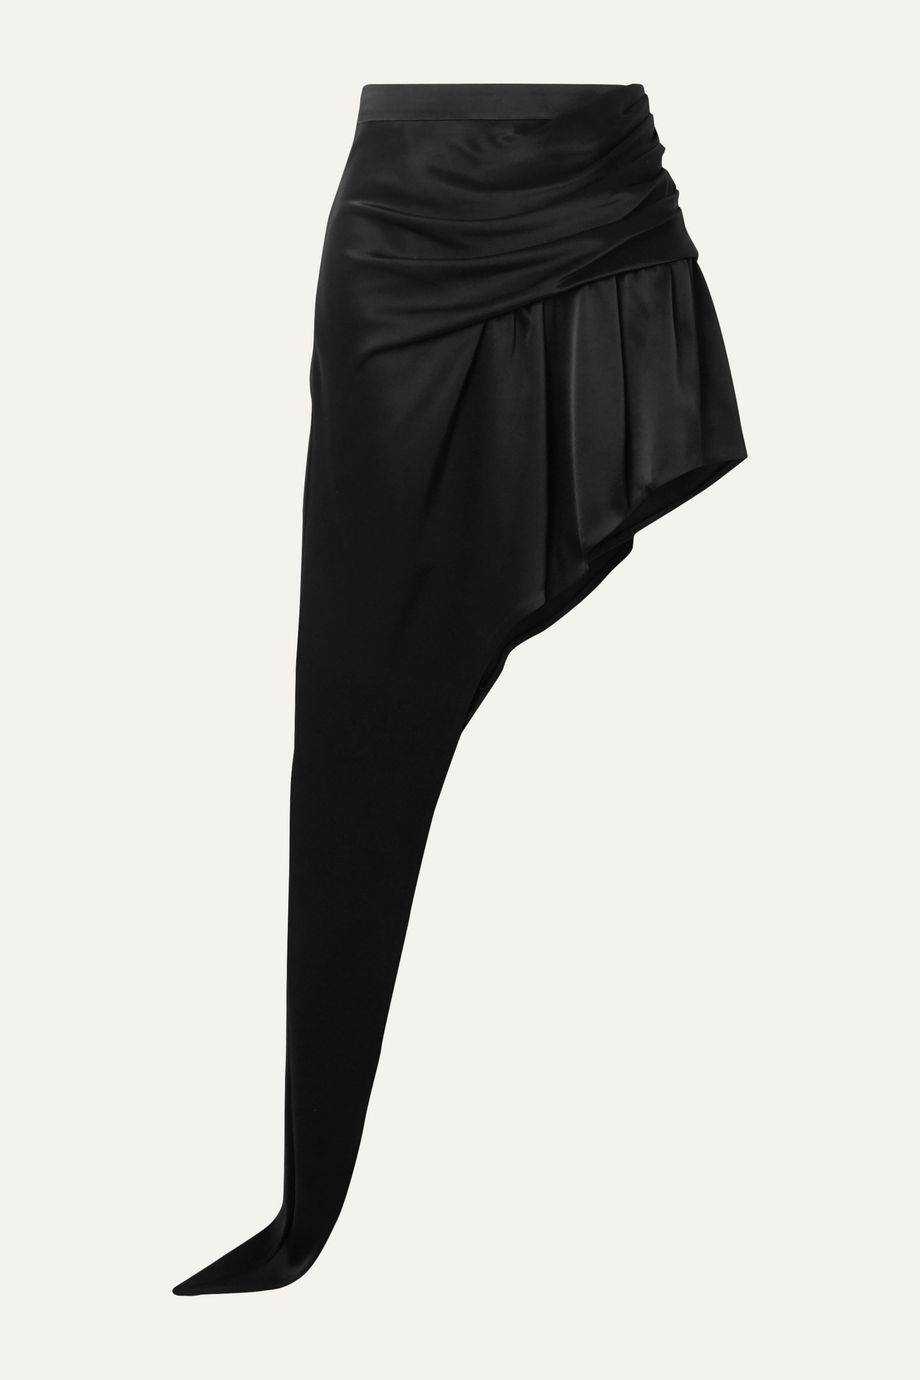 Alexander Wang Asymmetric draped satin mini skirt